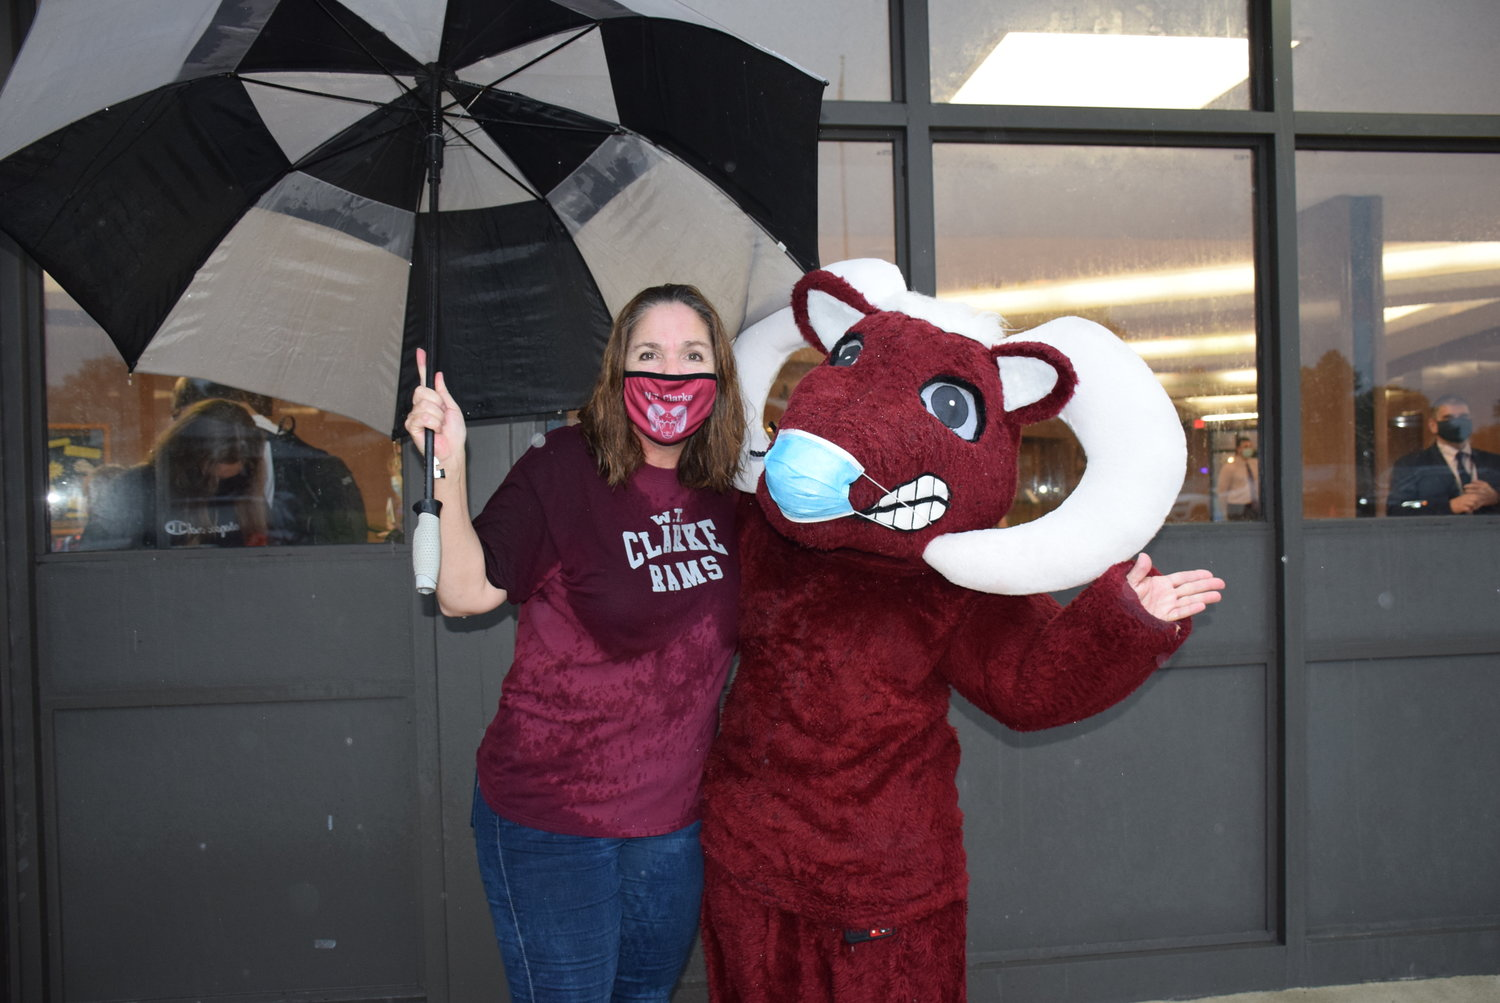 Allyson Benowitz, of the East Meadow Board of Education, and the W.T. Clarke Ram mascot greeted students outside of W.T. Clarke Middle School on Sept. 10.